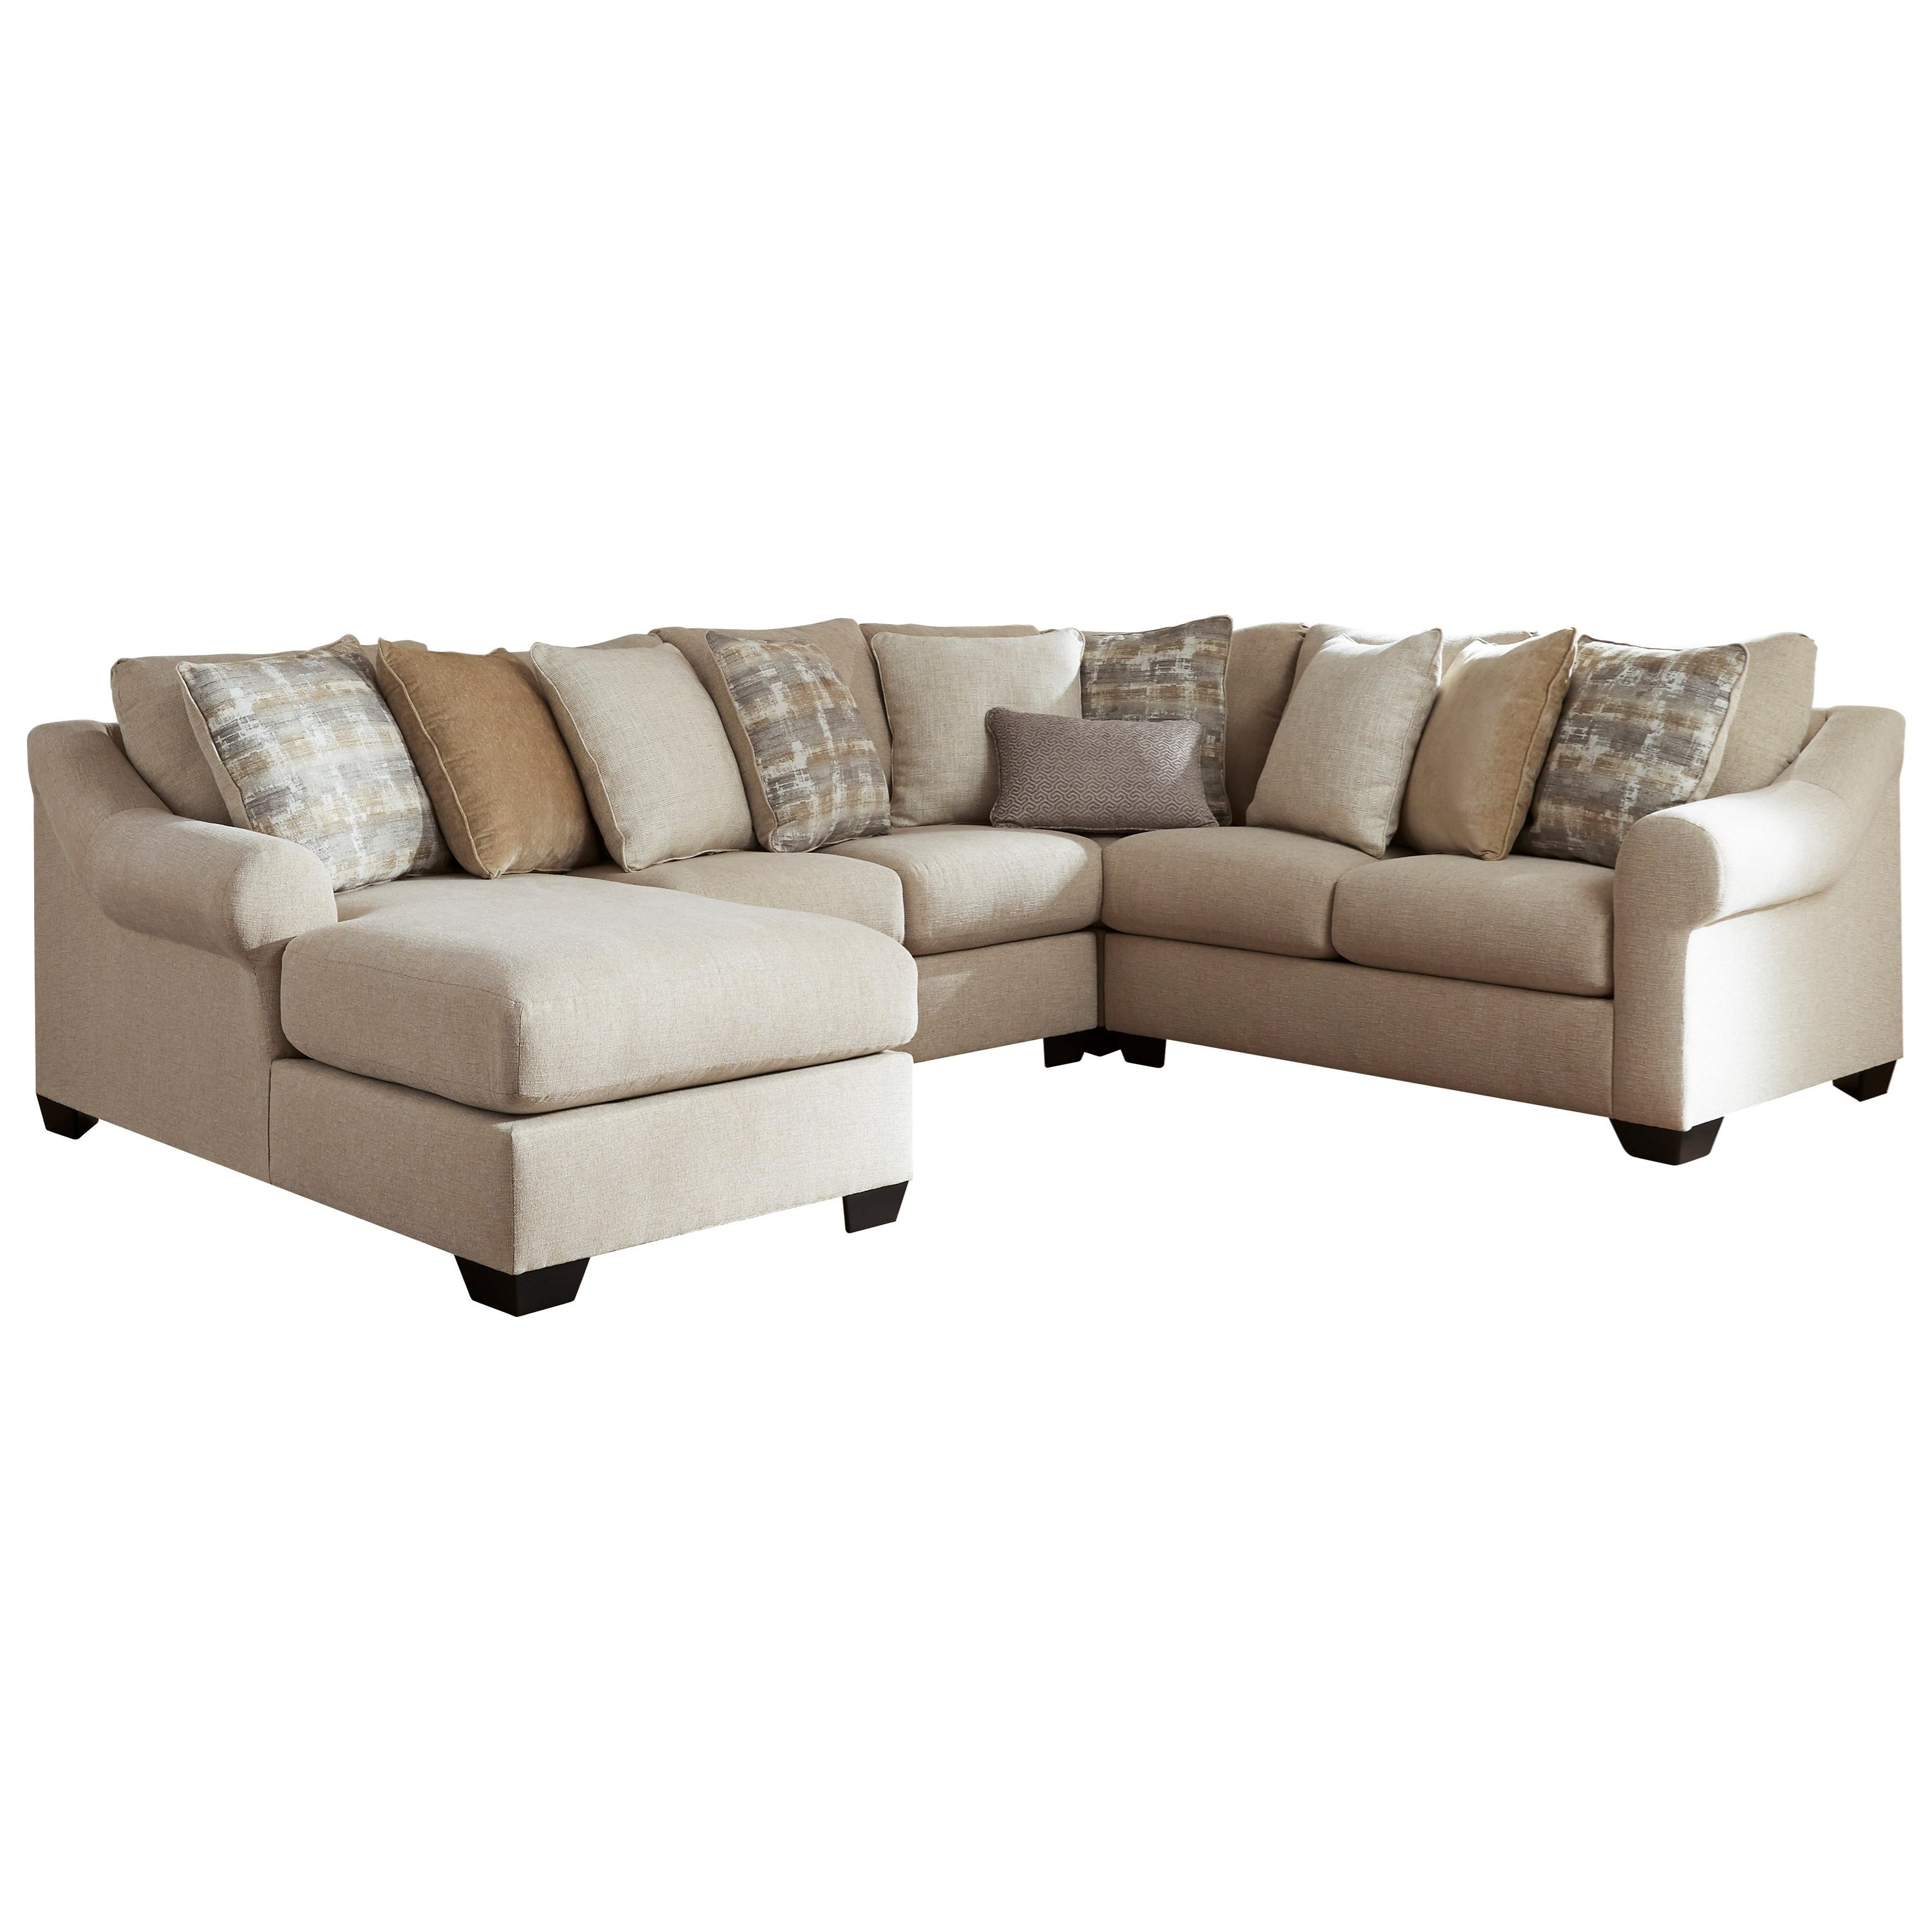 Ingleside 4-Piece Sectional with Chaise by Benchcraft at Miller Waldrop Furniture and Decor